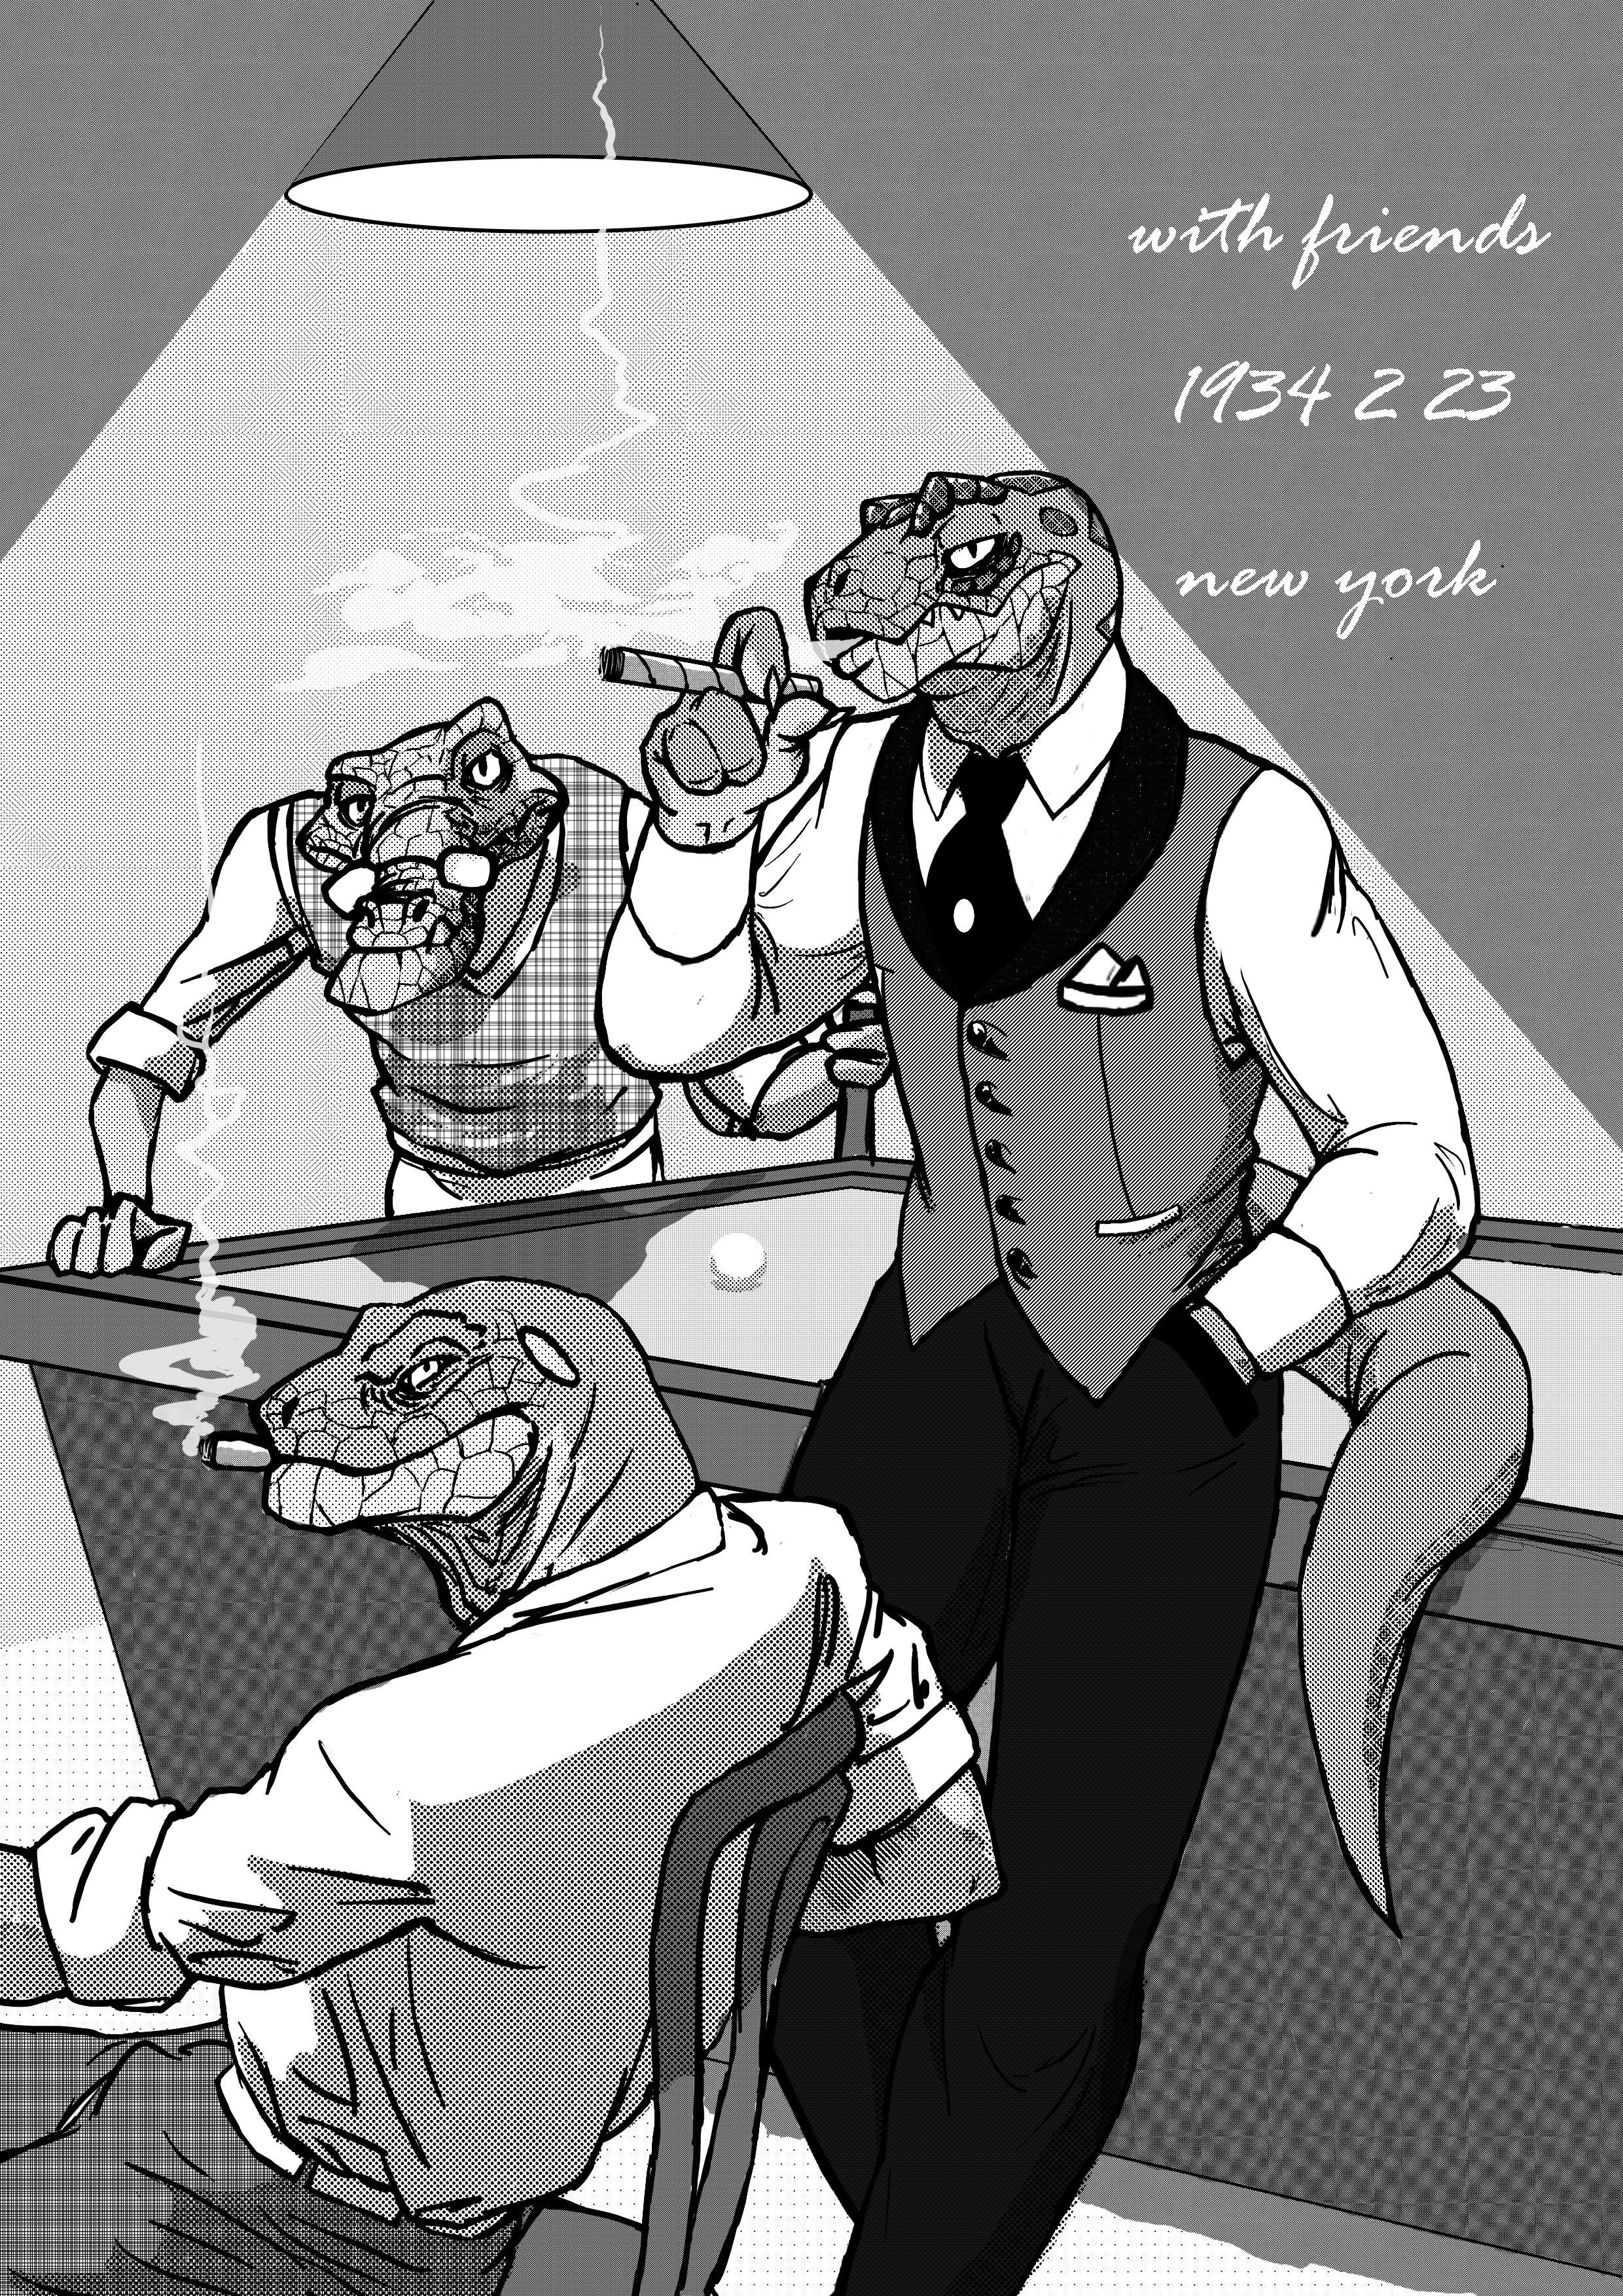 e926 absurd_res anthro billiard_ball billiards cigar classy clothed clothing crocodile crocodilian cue_ball eyewear glasses greyscale group hi_res lamp male monochrome reptile scalie schbelt smoke smoking snake stippling tone_work